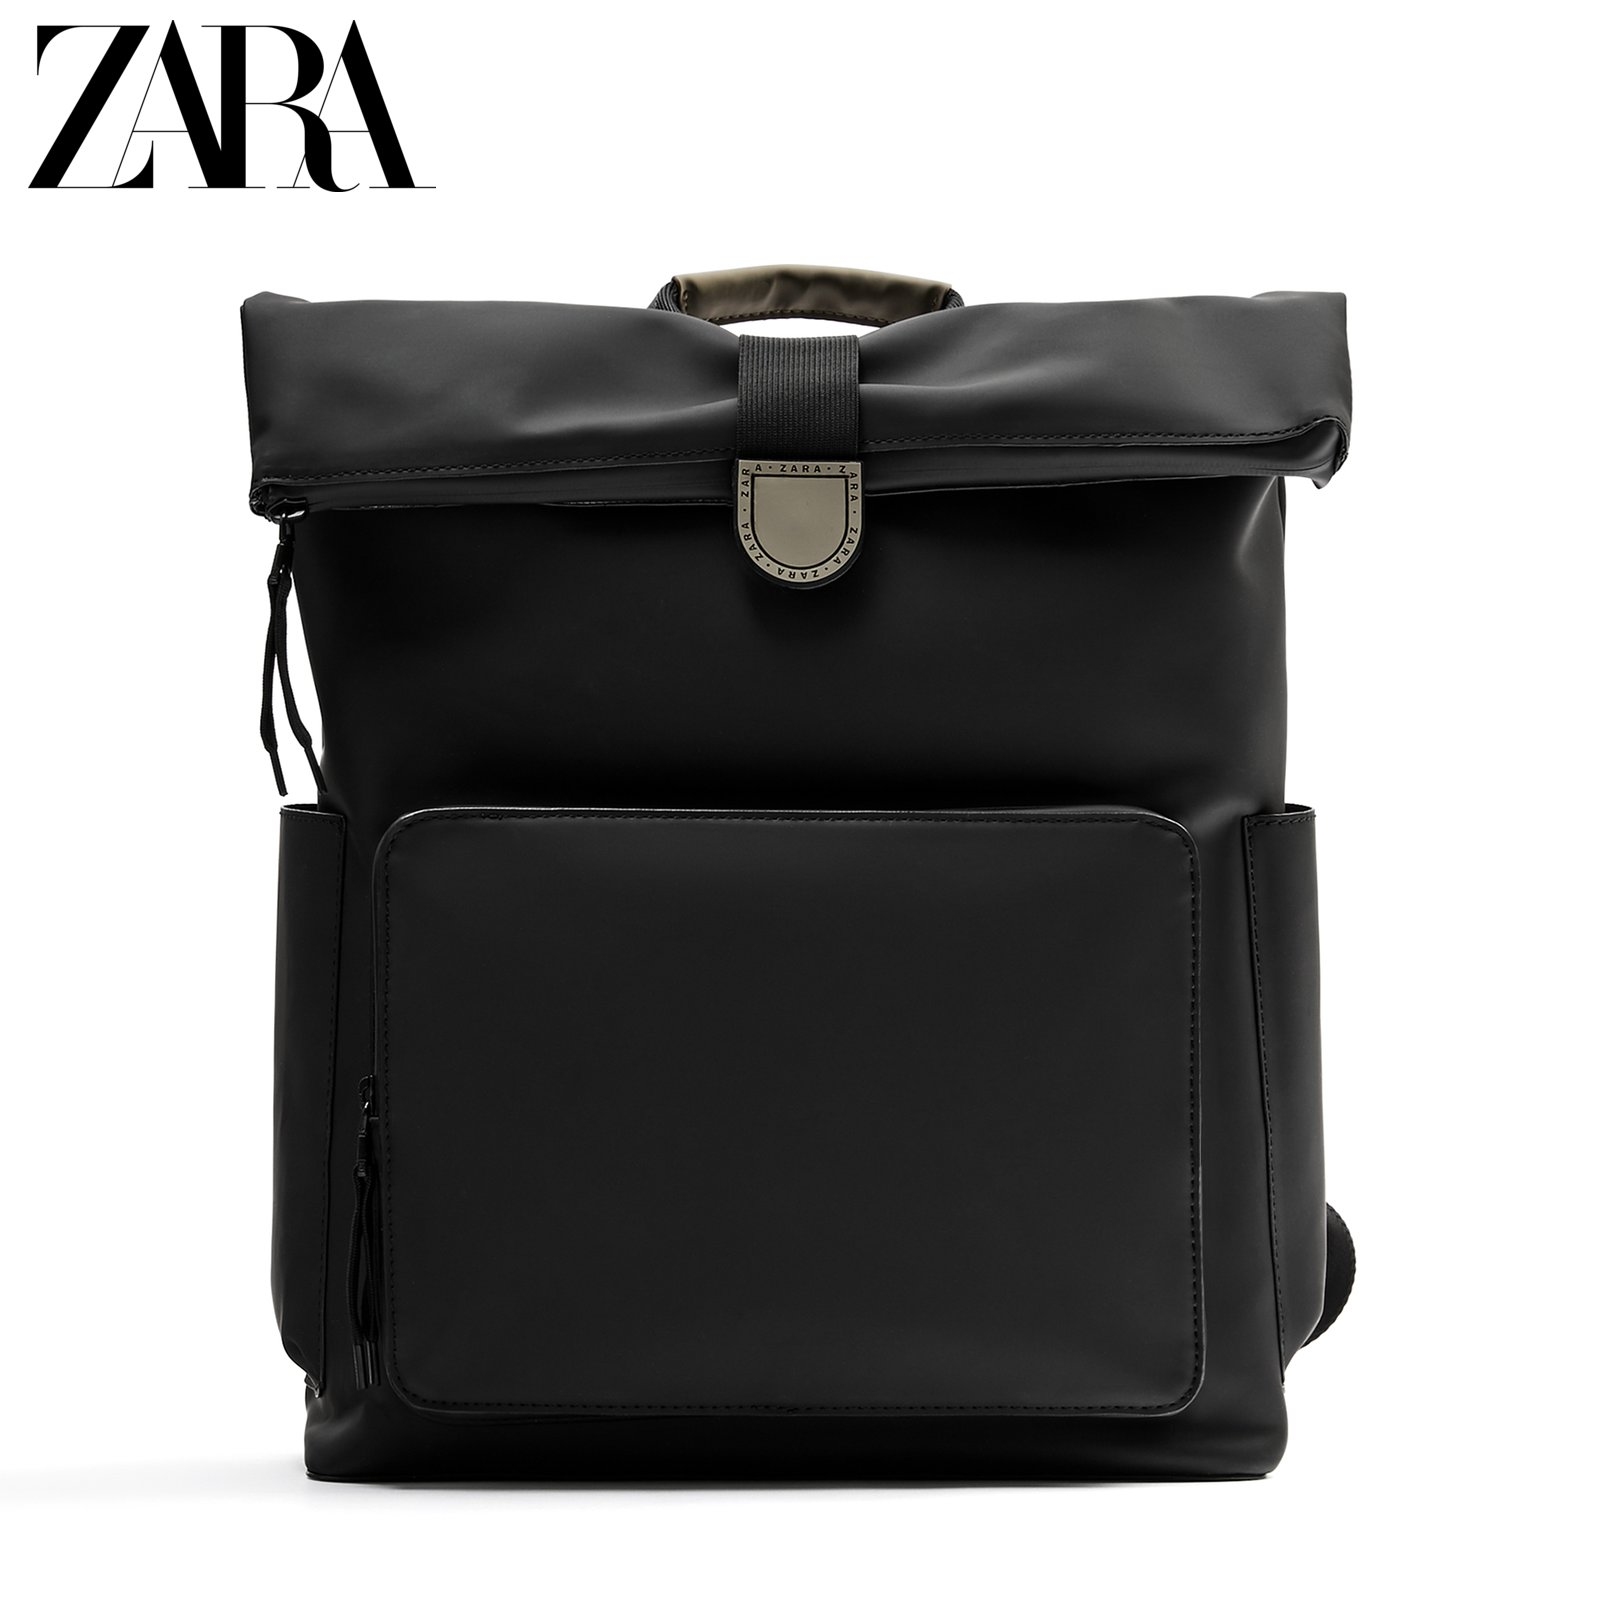 Zara new men's bag black laminated large-capacity portable and practical backpack 13215620040